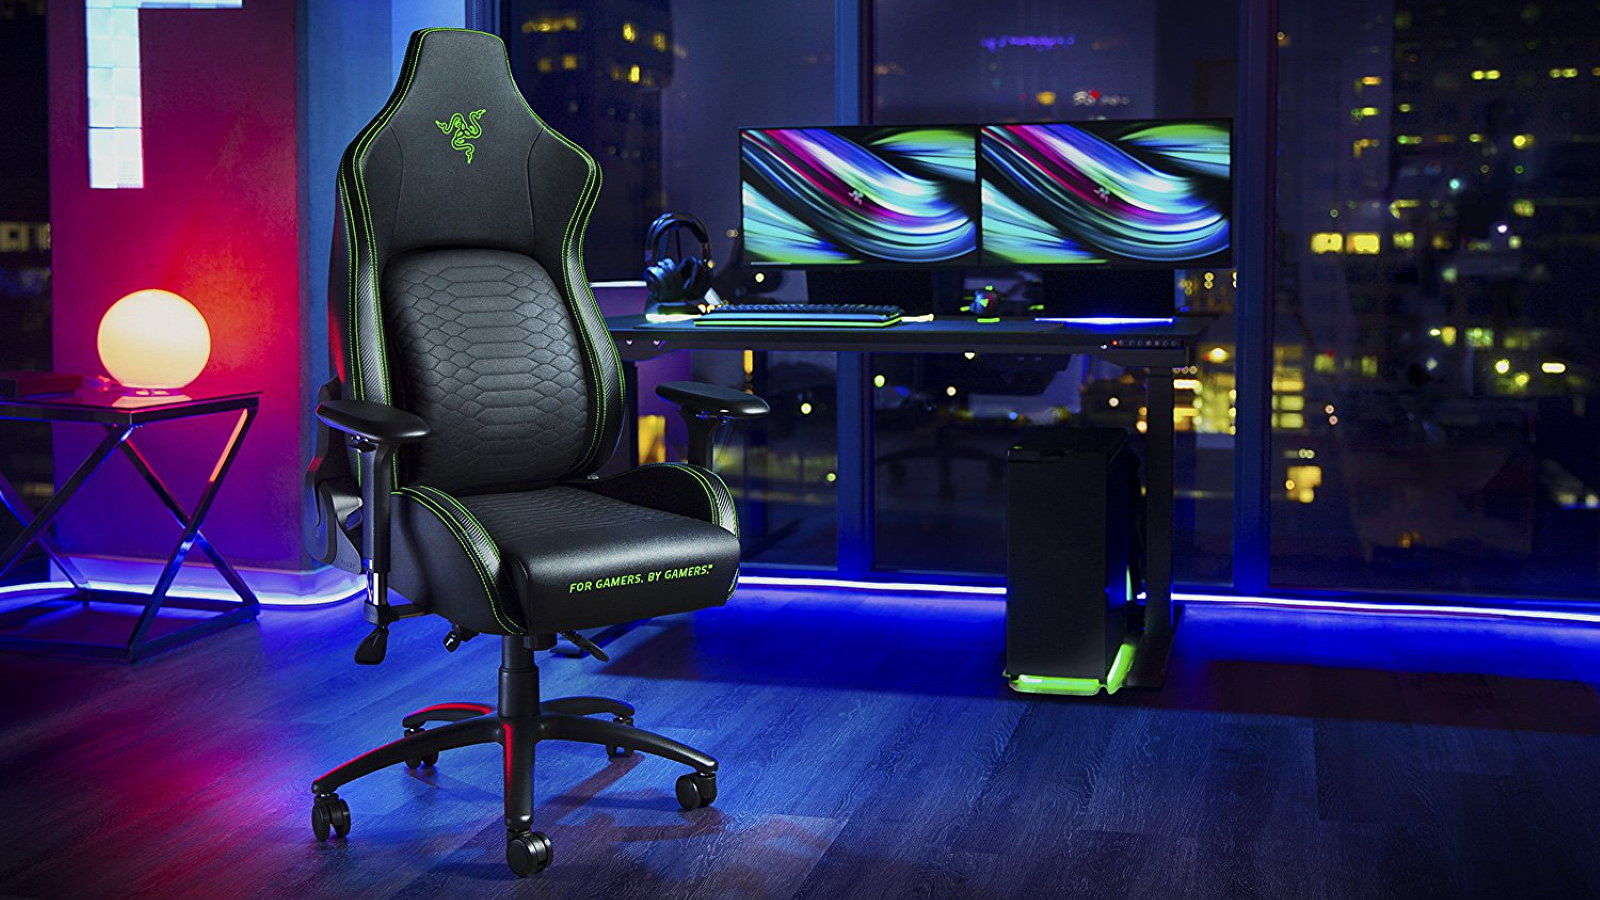 Get Razer's £500 gaming chair for free with this RTX 2080 Super laptop